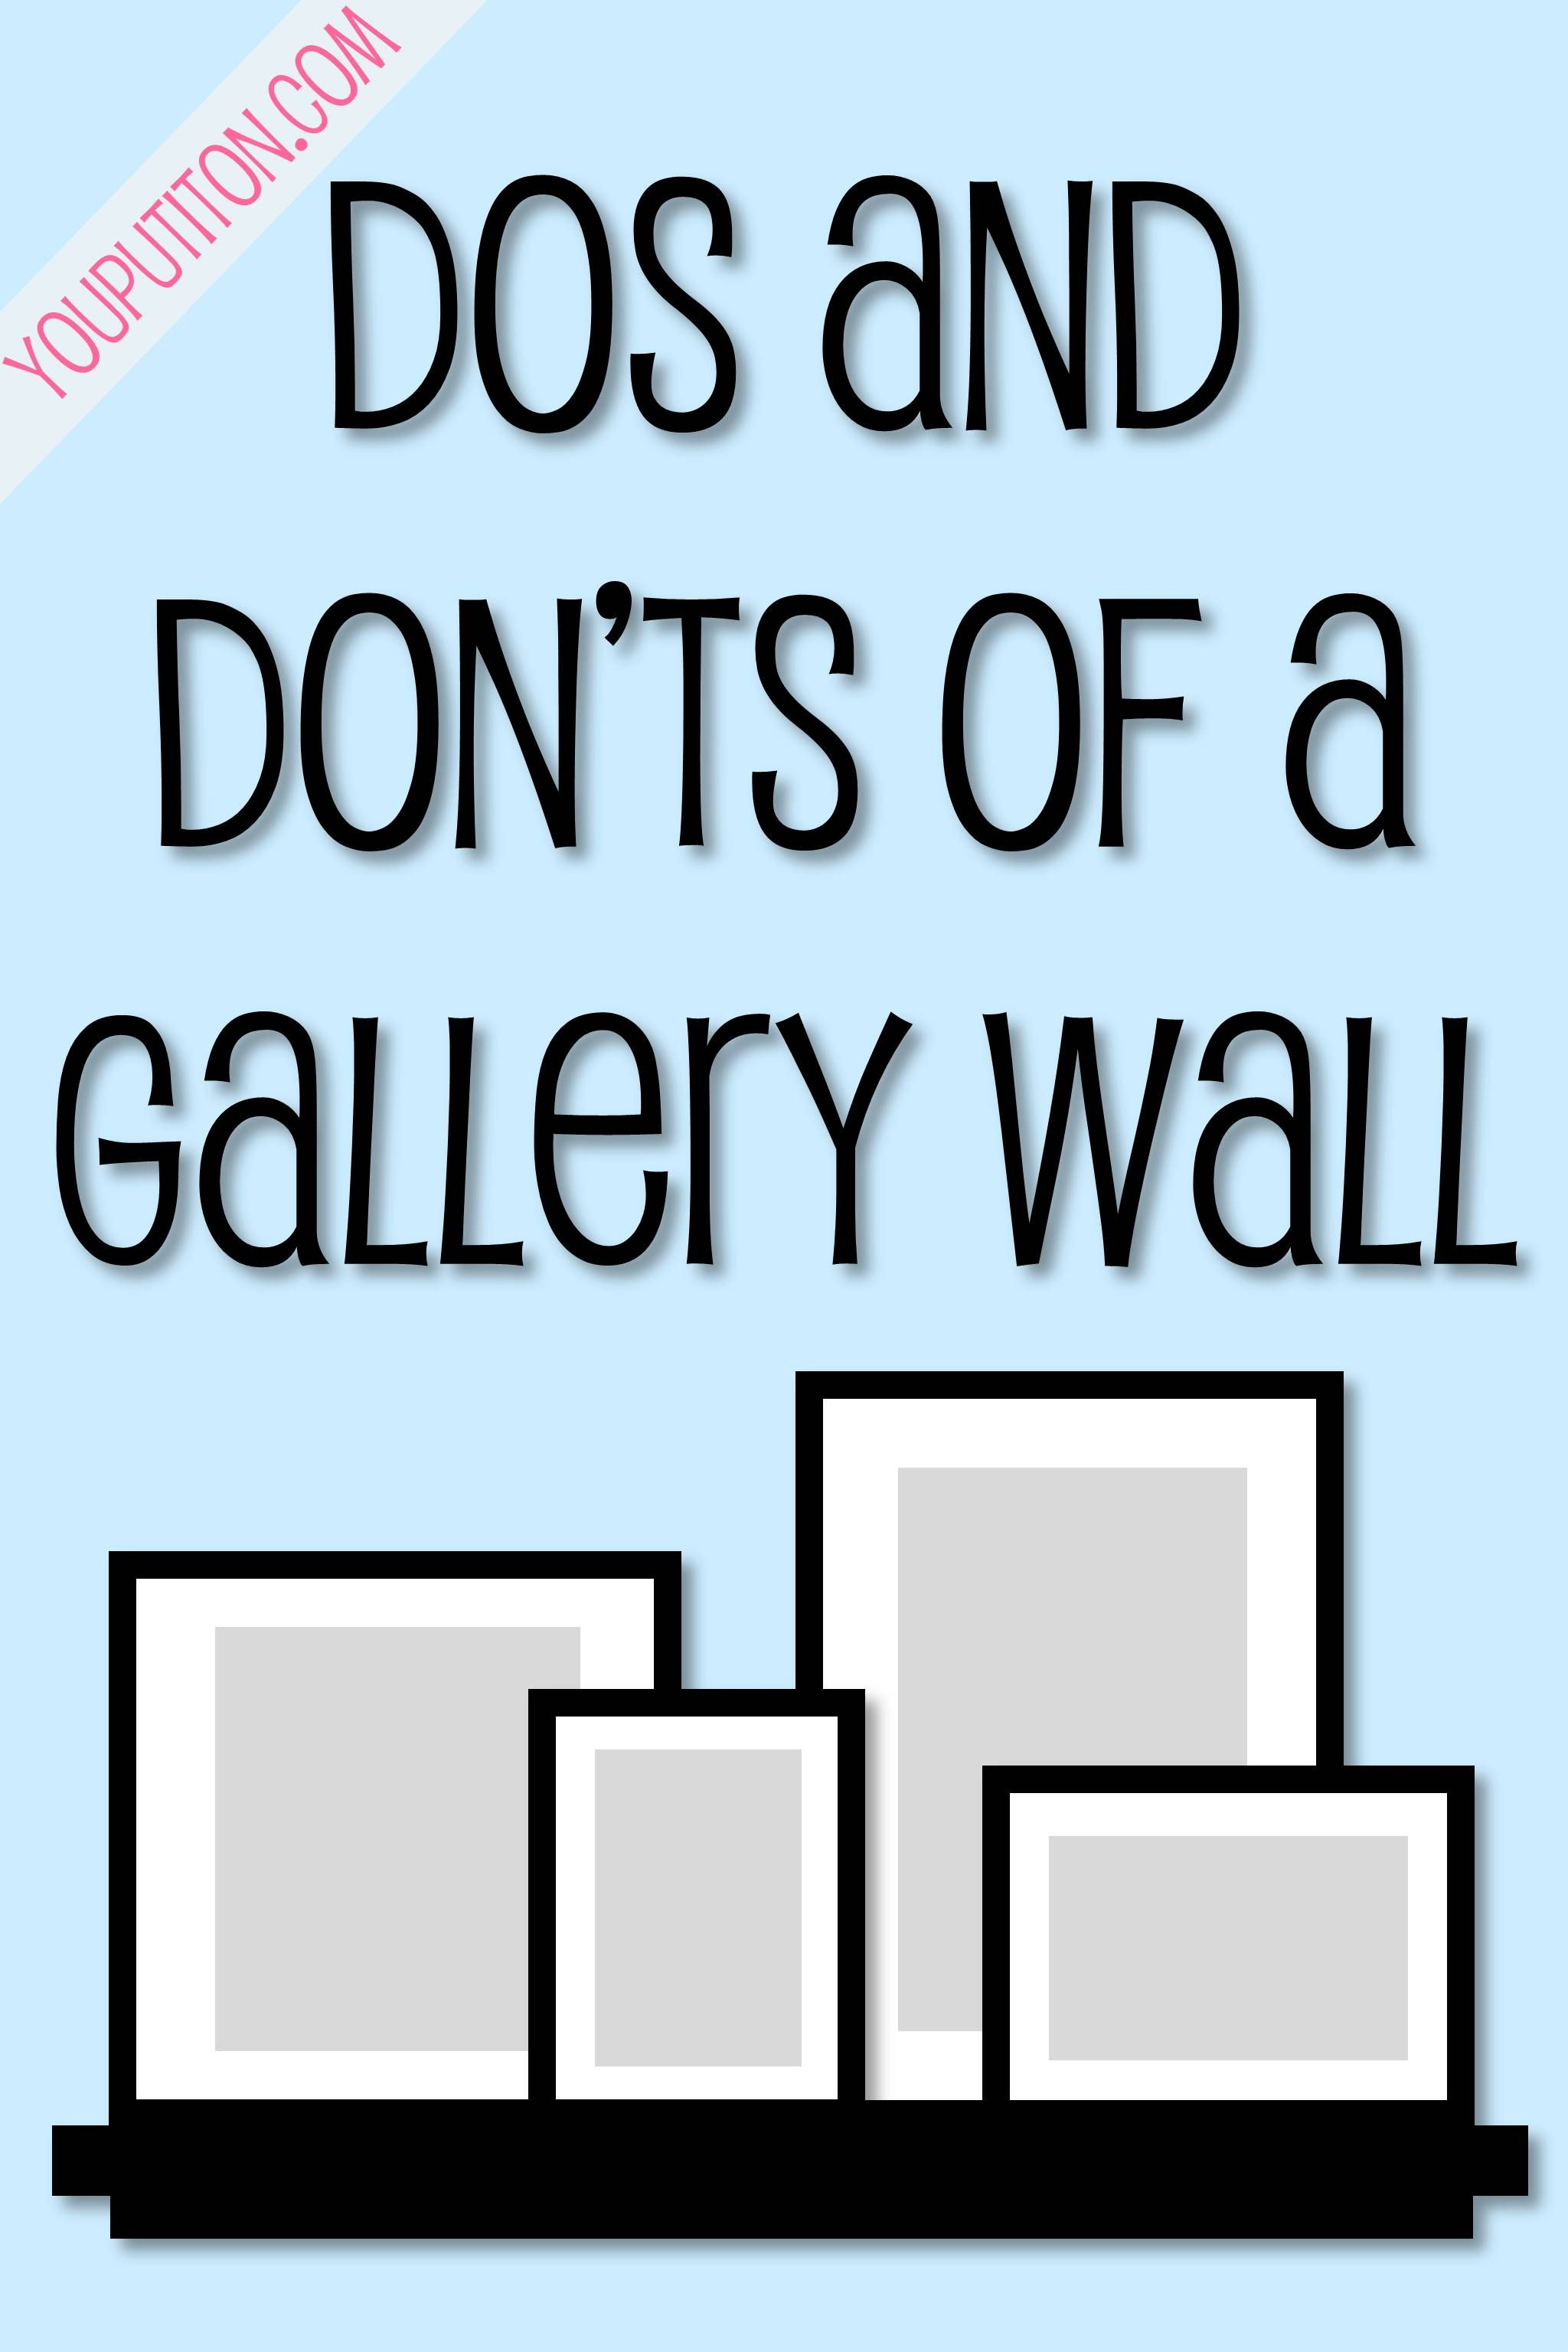 Dos and dont of a gallery wall best of pinterest pinterest dos and dont of a gallery wall jeuxipadfo Image collections